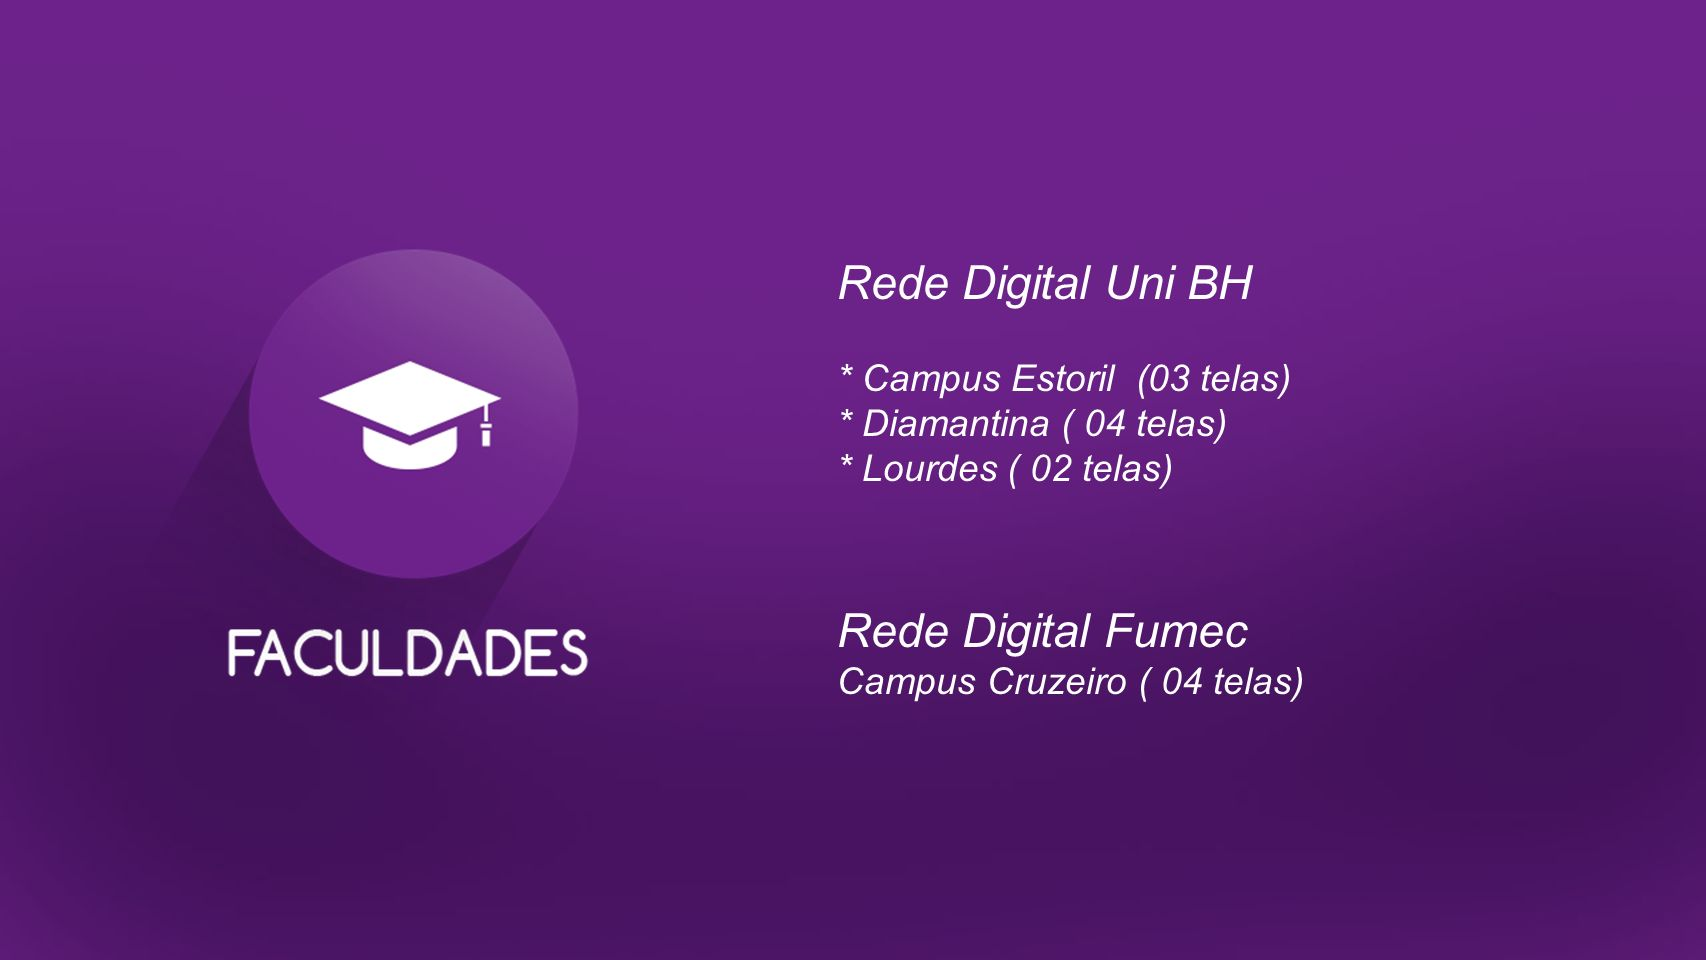 Rede Digital Uni BH Rede Digital Fumec * Campus Estoril (03 telas)